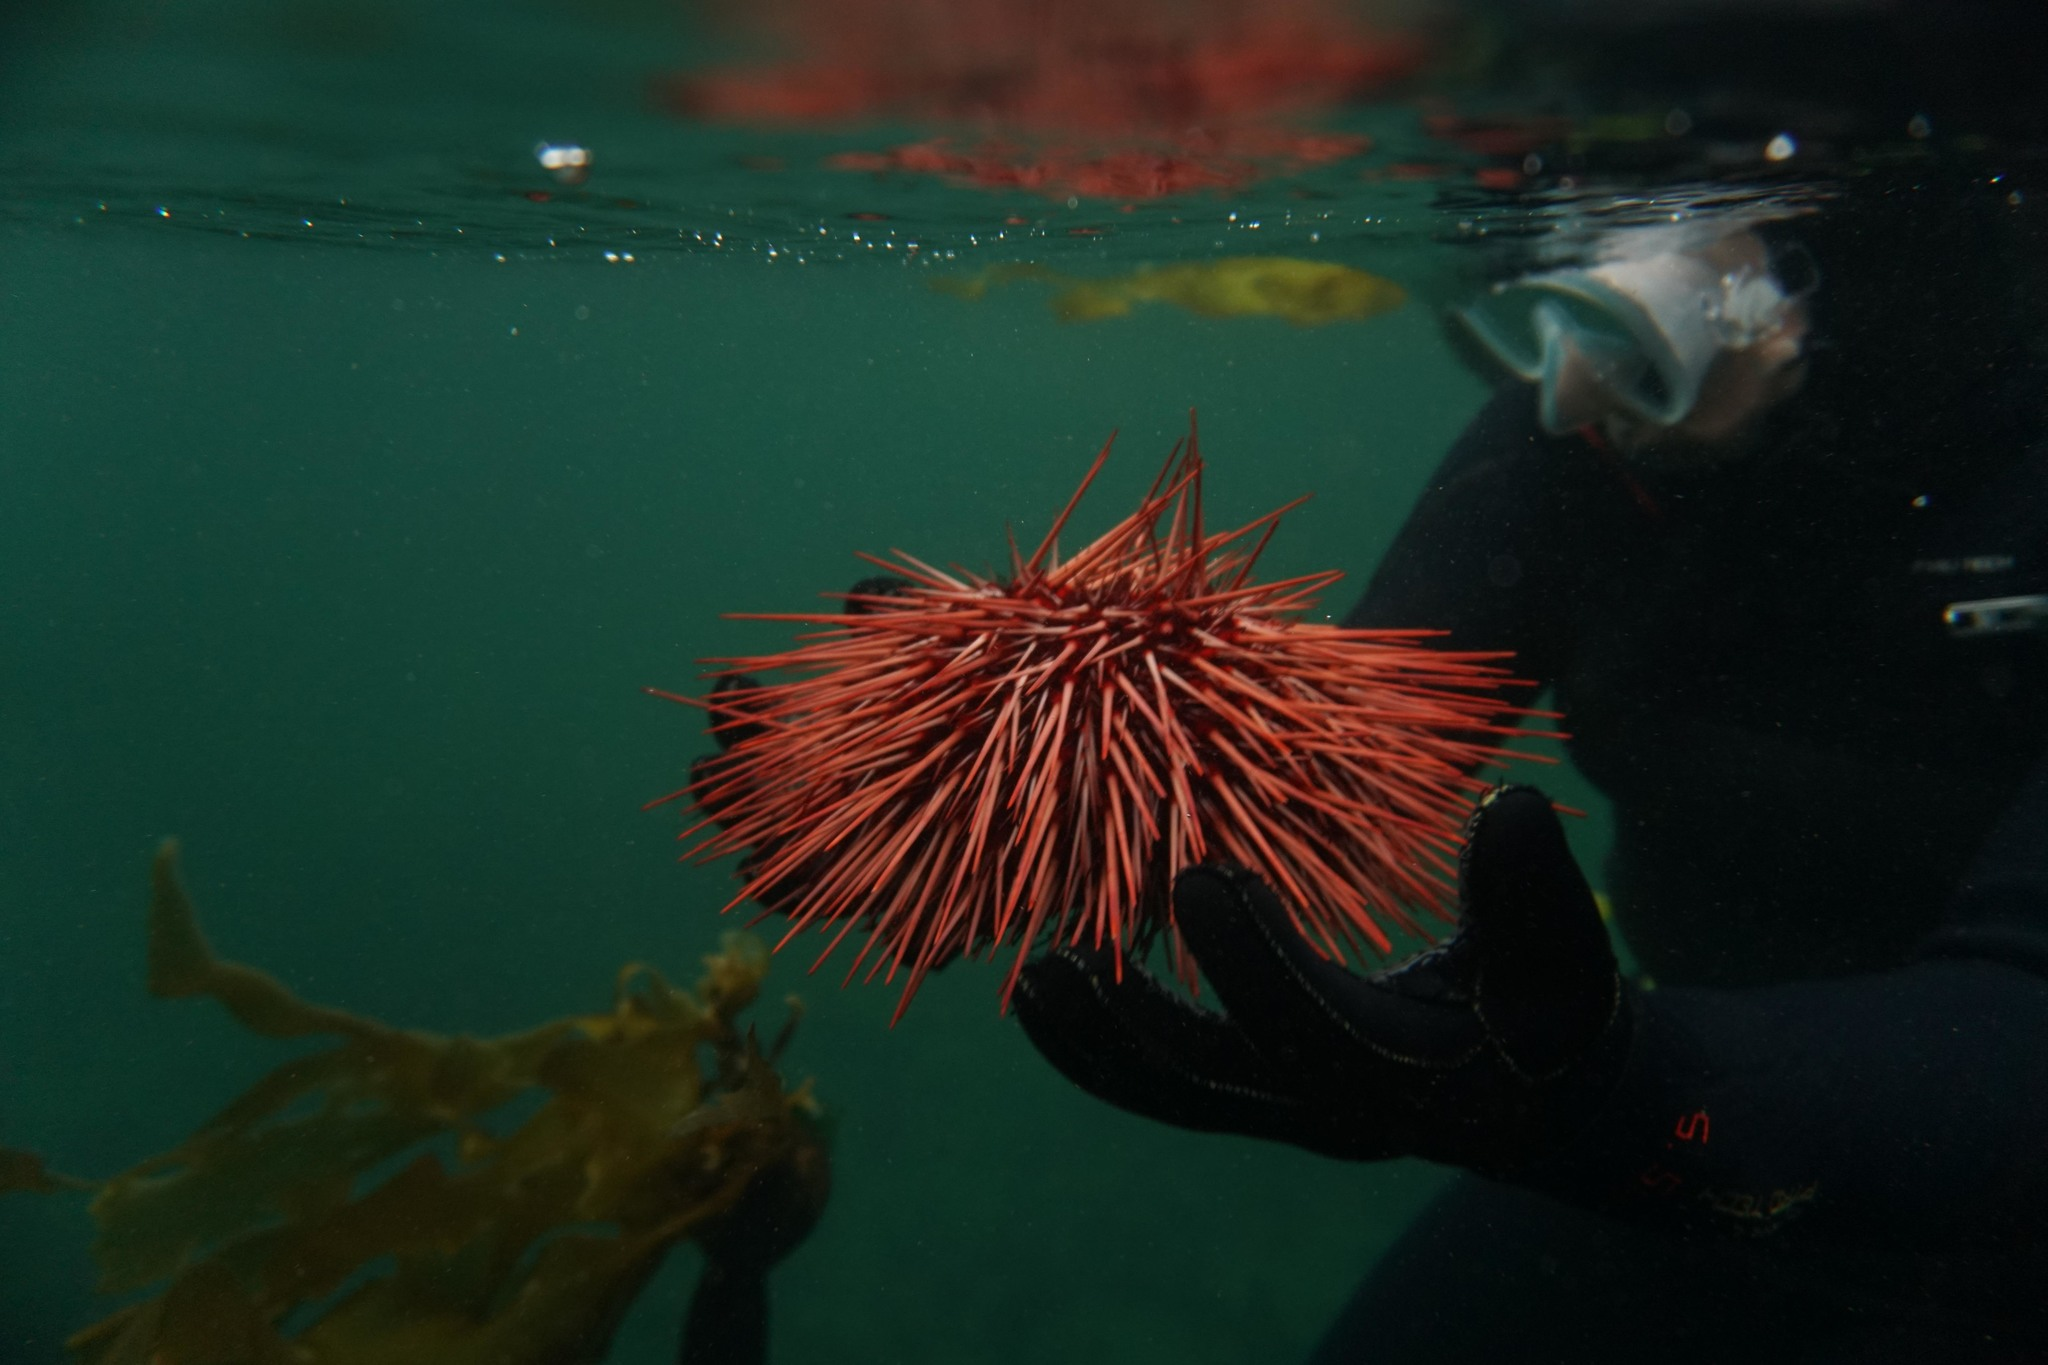 red sea urchin held underwater by a scuba diver, a kelp piece floats in the background